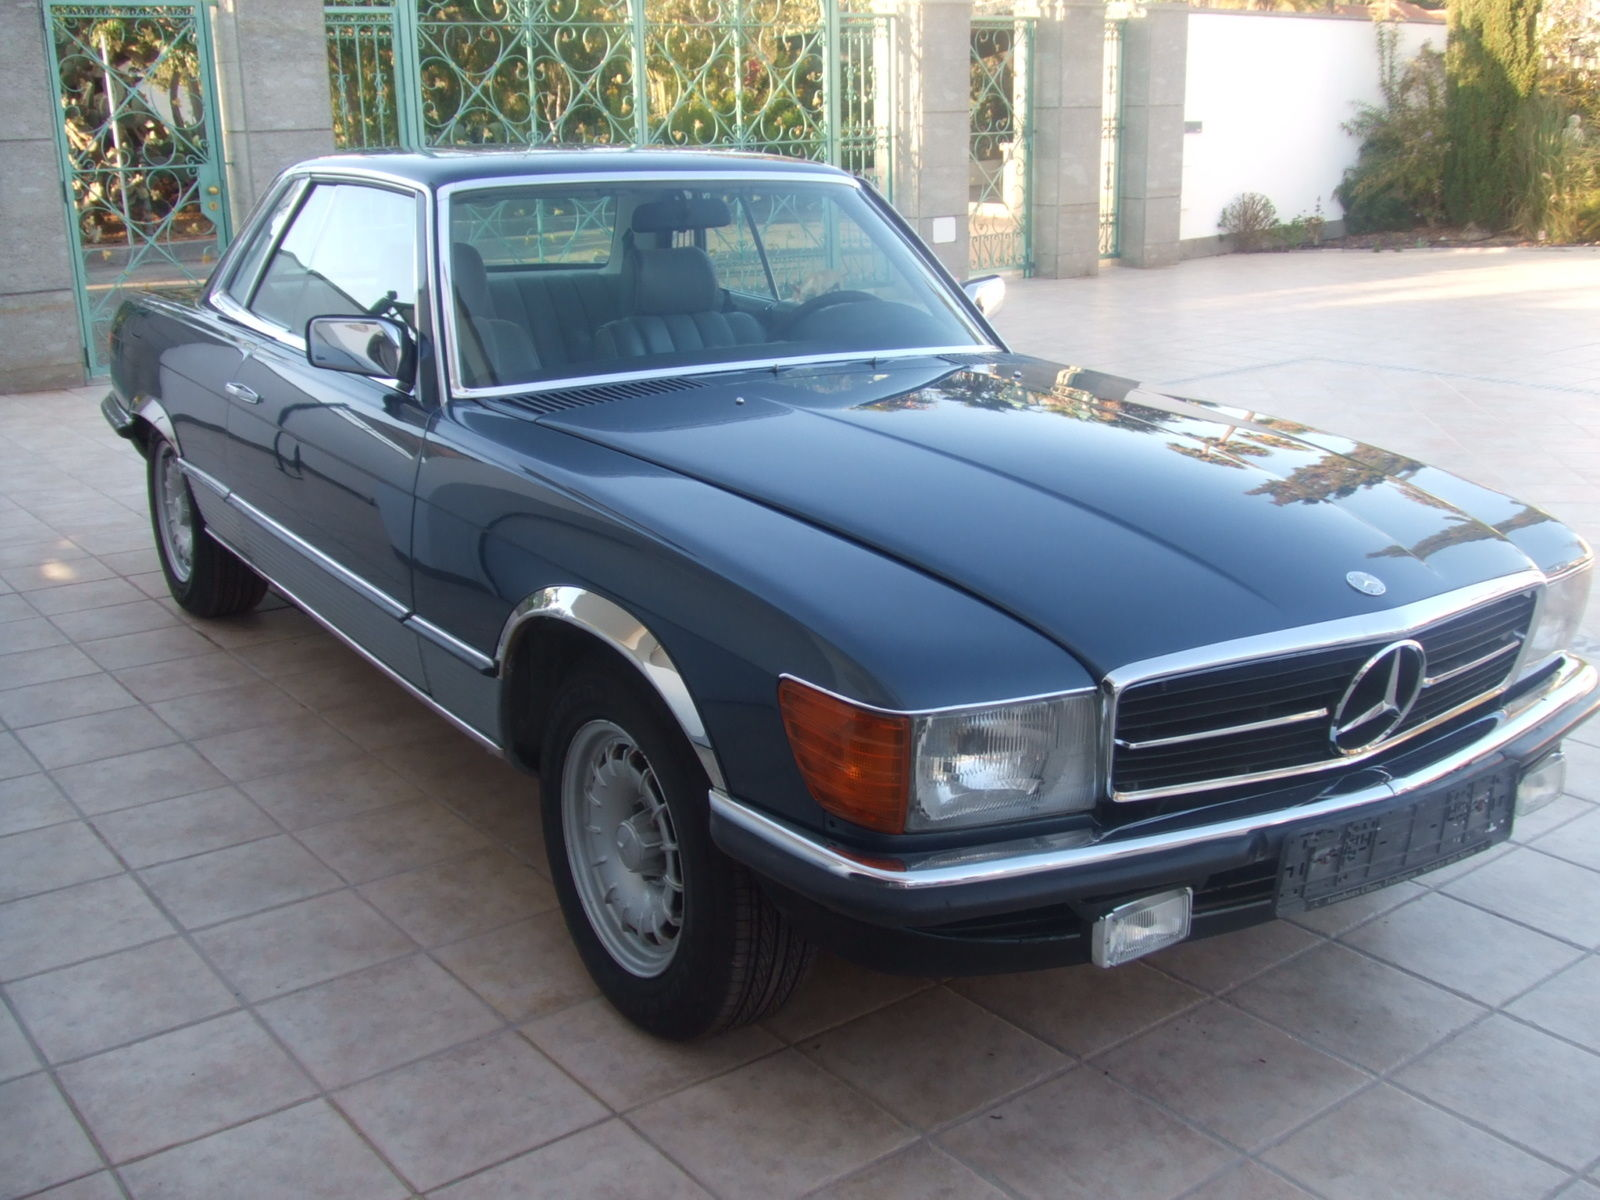 Mercedes 500 slc 1980 only 1000 cars built topas blue for 500 mercedes benz for sale